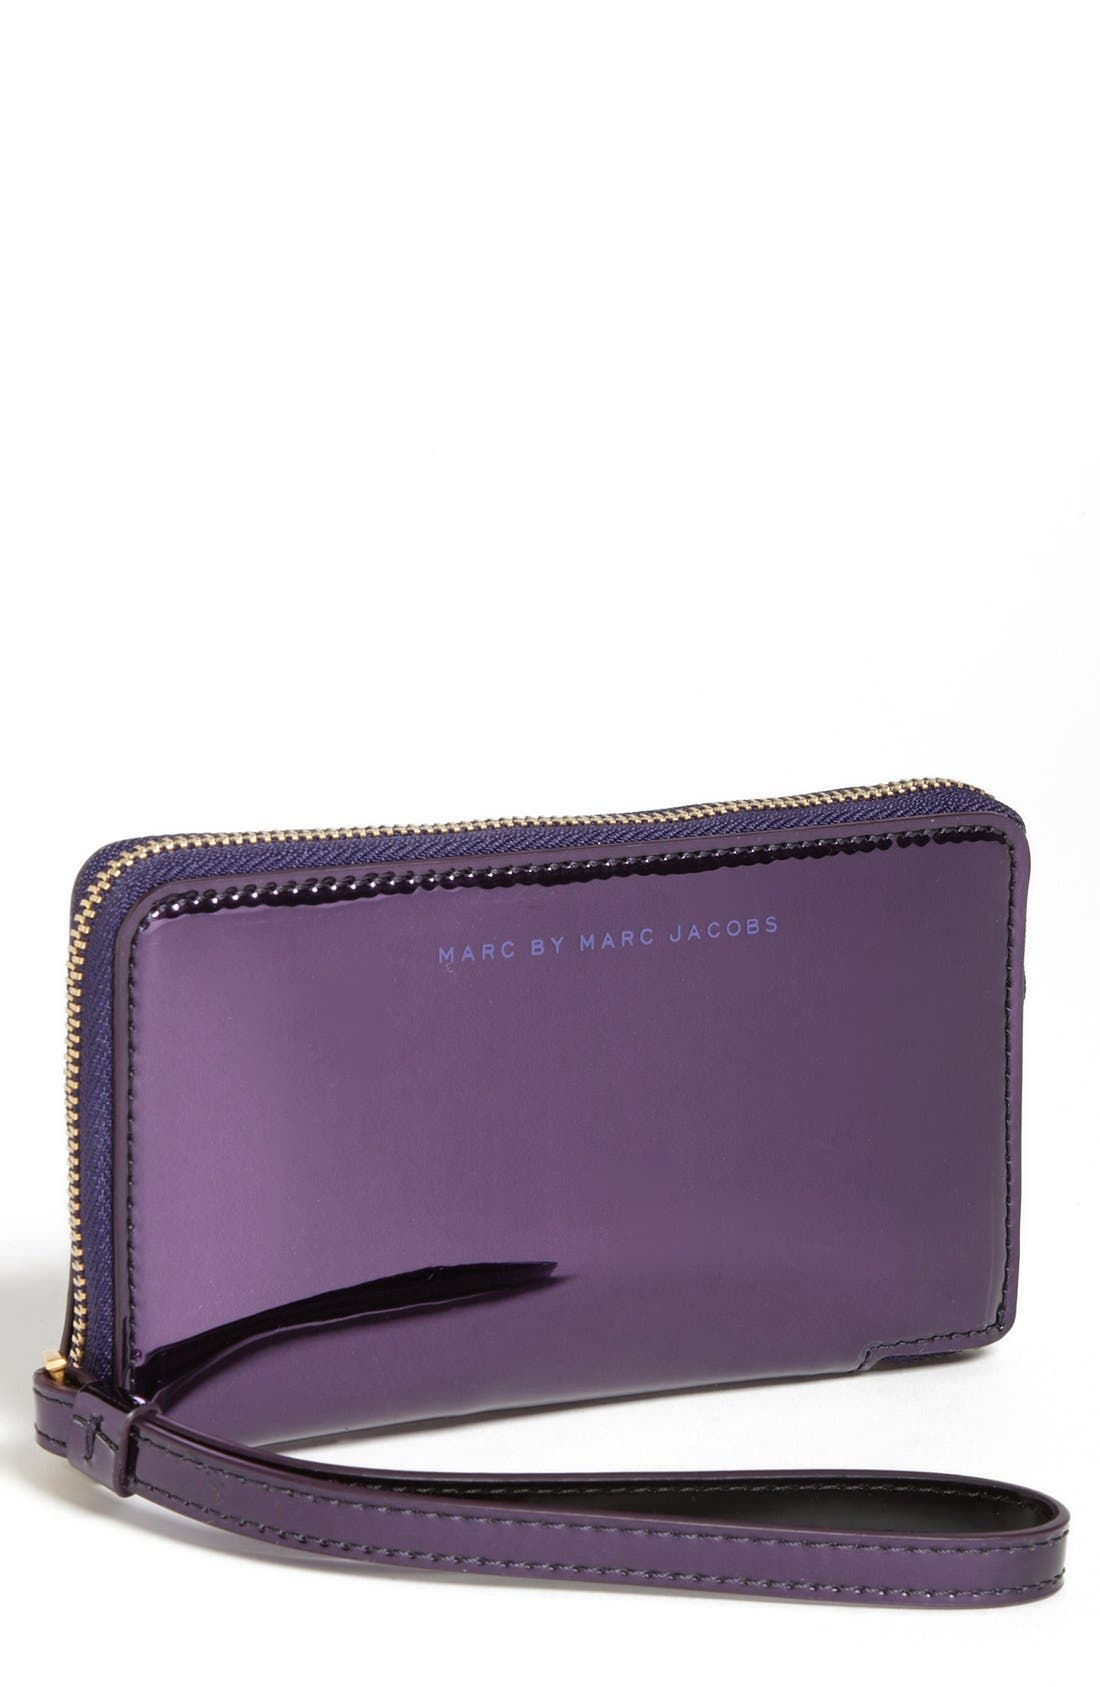 Main Image - MARC BY MARC JACOBS 'Techno - Wingman' iPhone Wristlet